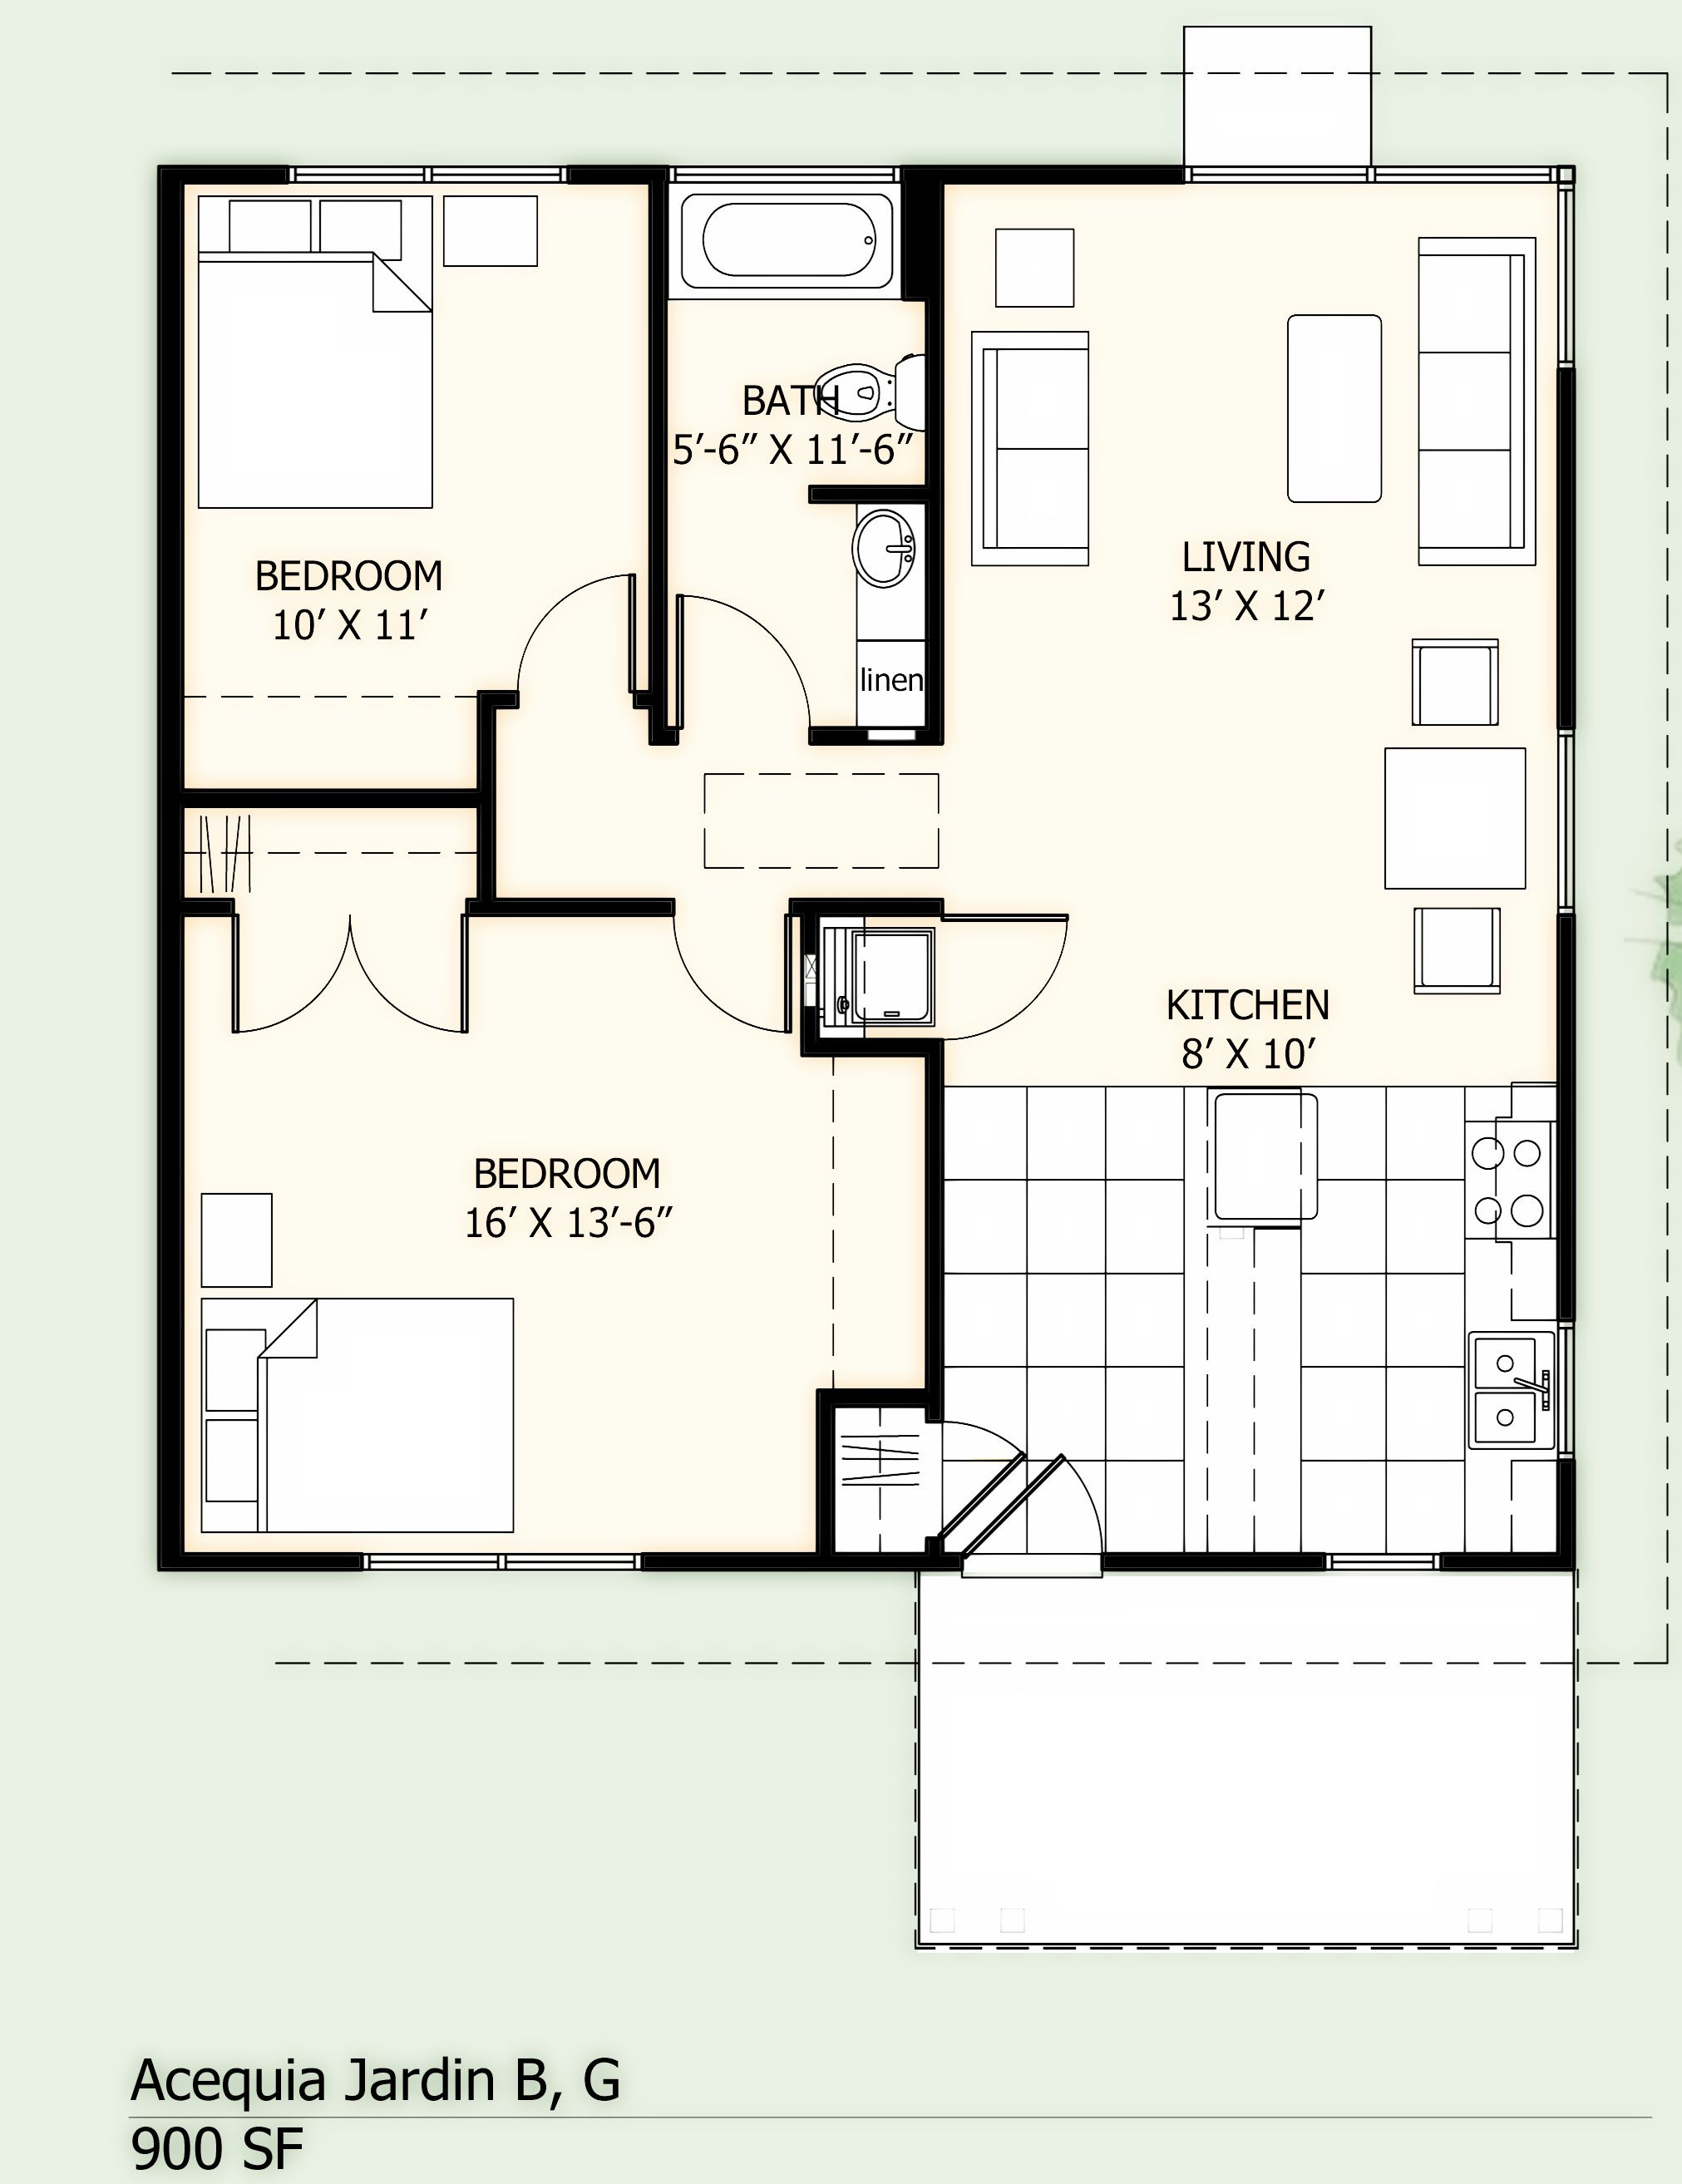 1000 Sq Ft Home Cost Best Of 21 ] Breathtaking Floor Plan 1000 Sq Ft Home Design that